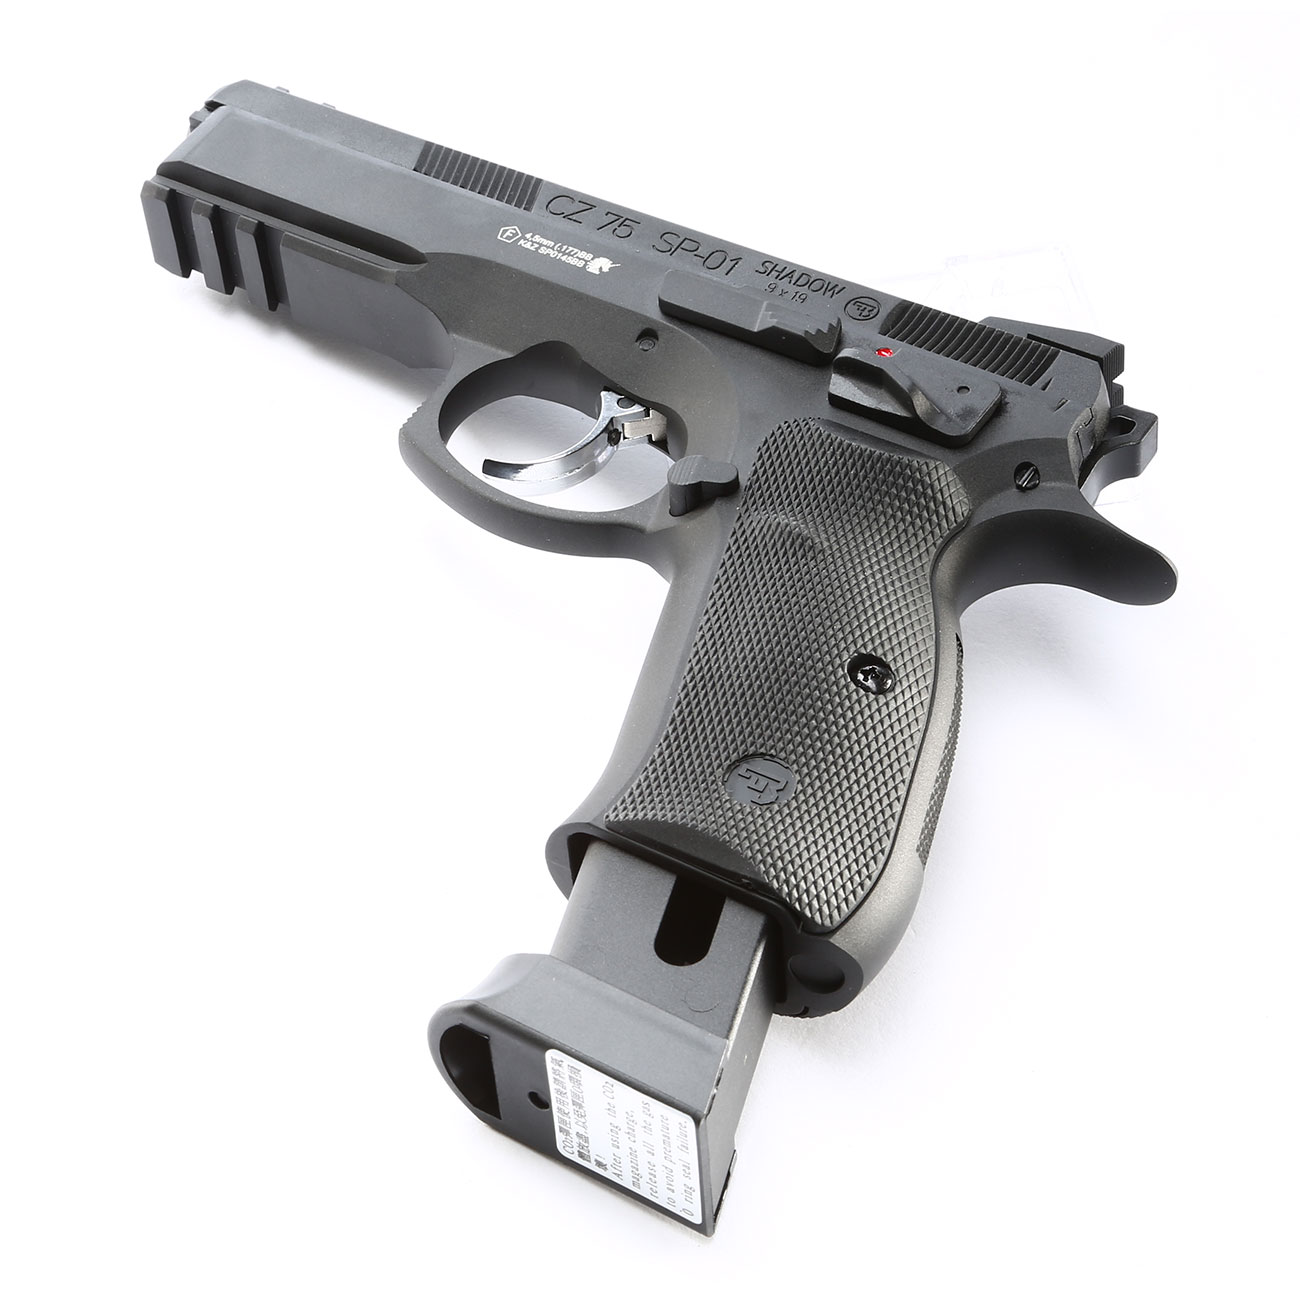 ASG CZ 75 SP-01 Shadow CO2-Luftpistole Kal. 4,5mm BB schwarz Vollmetall Blowback 6